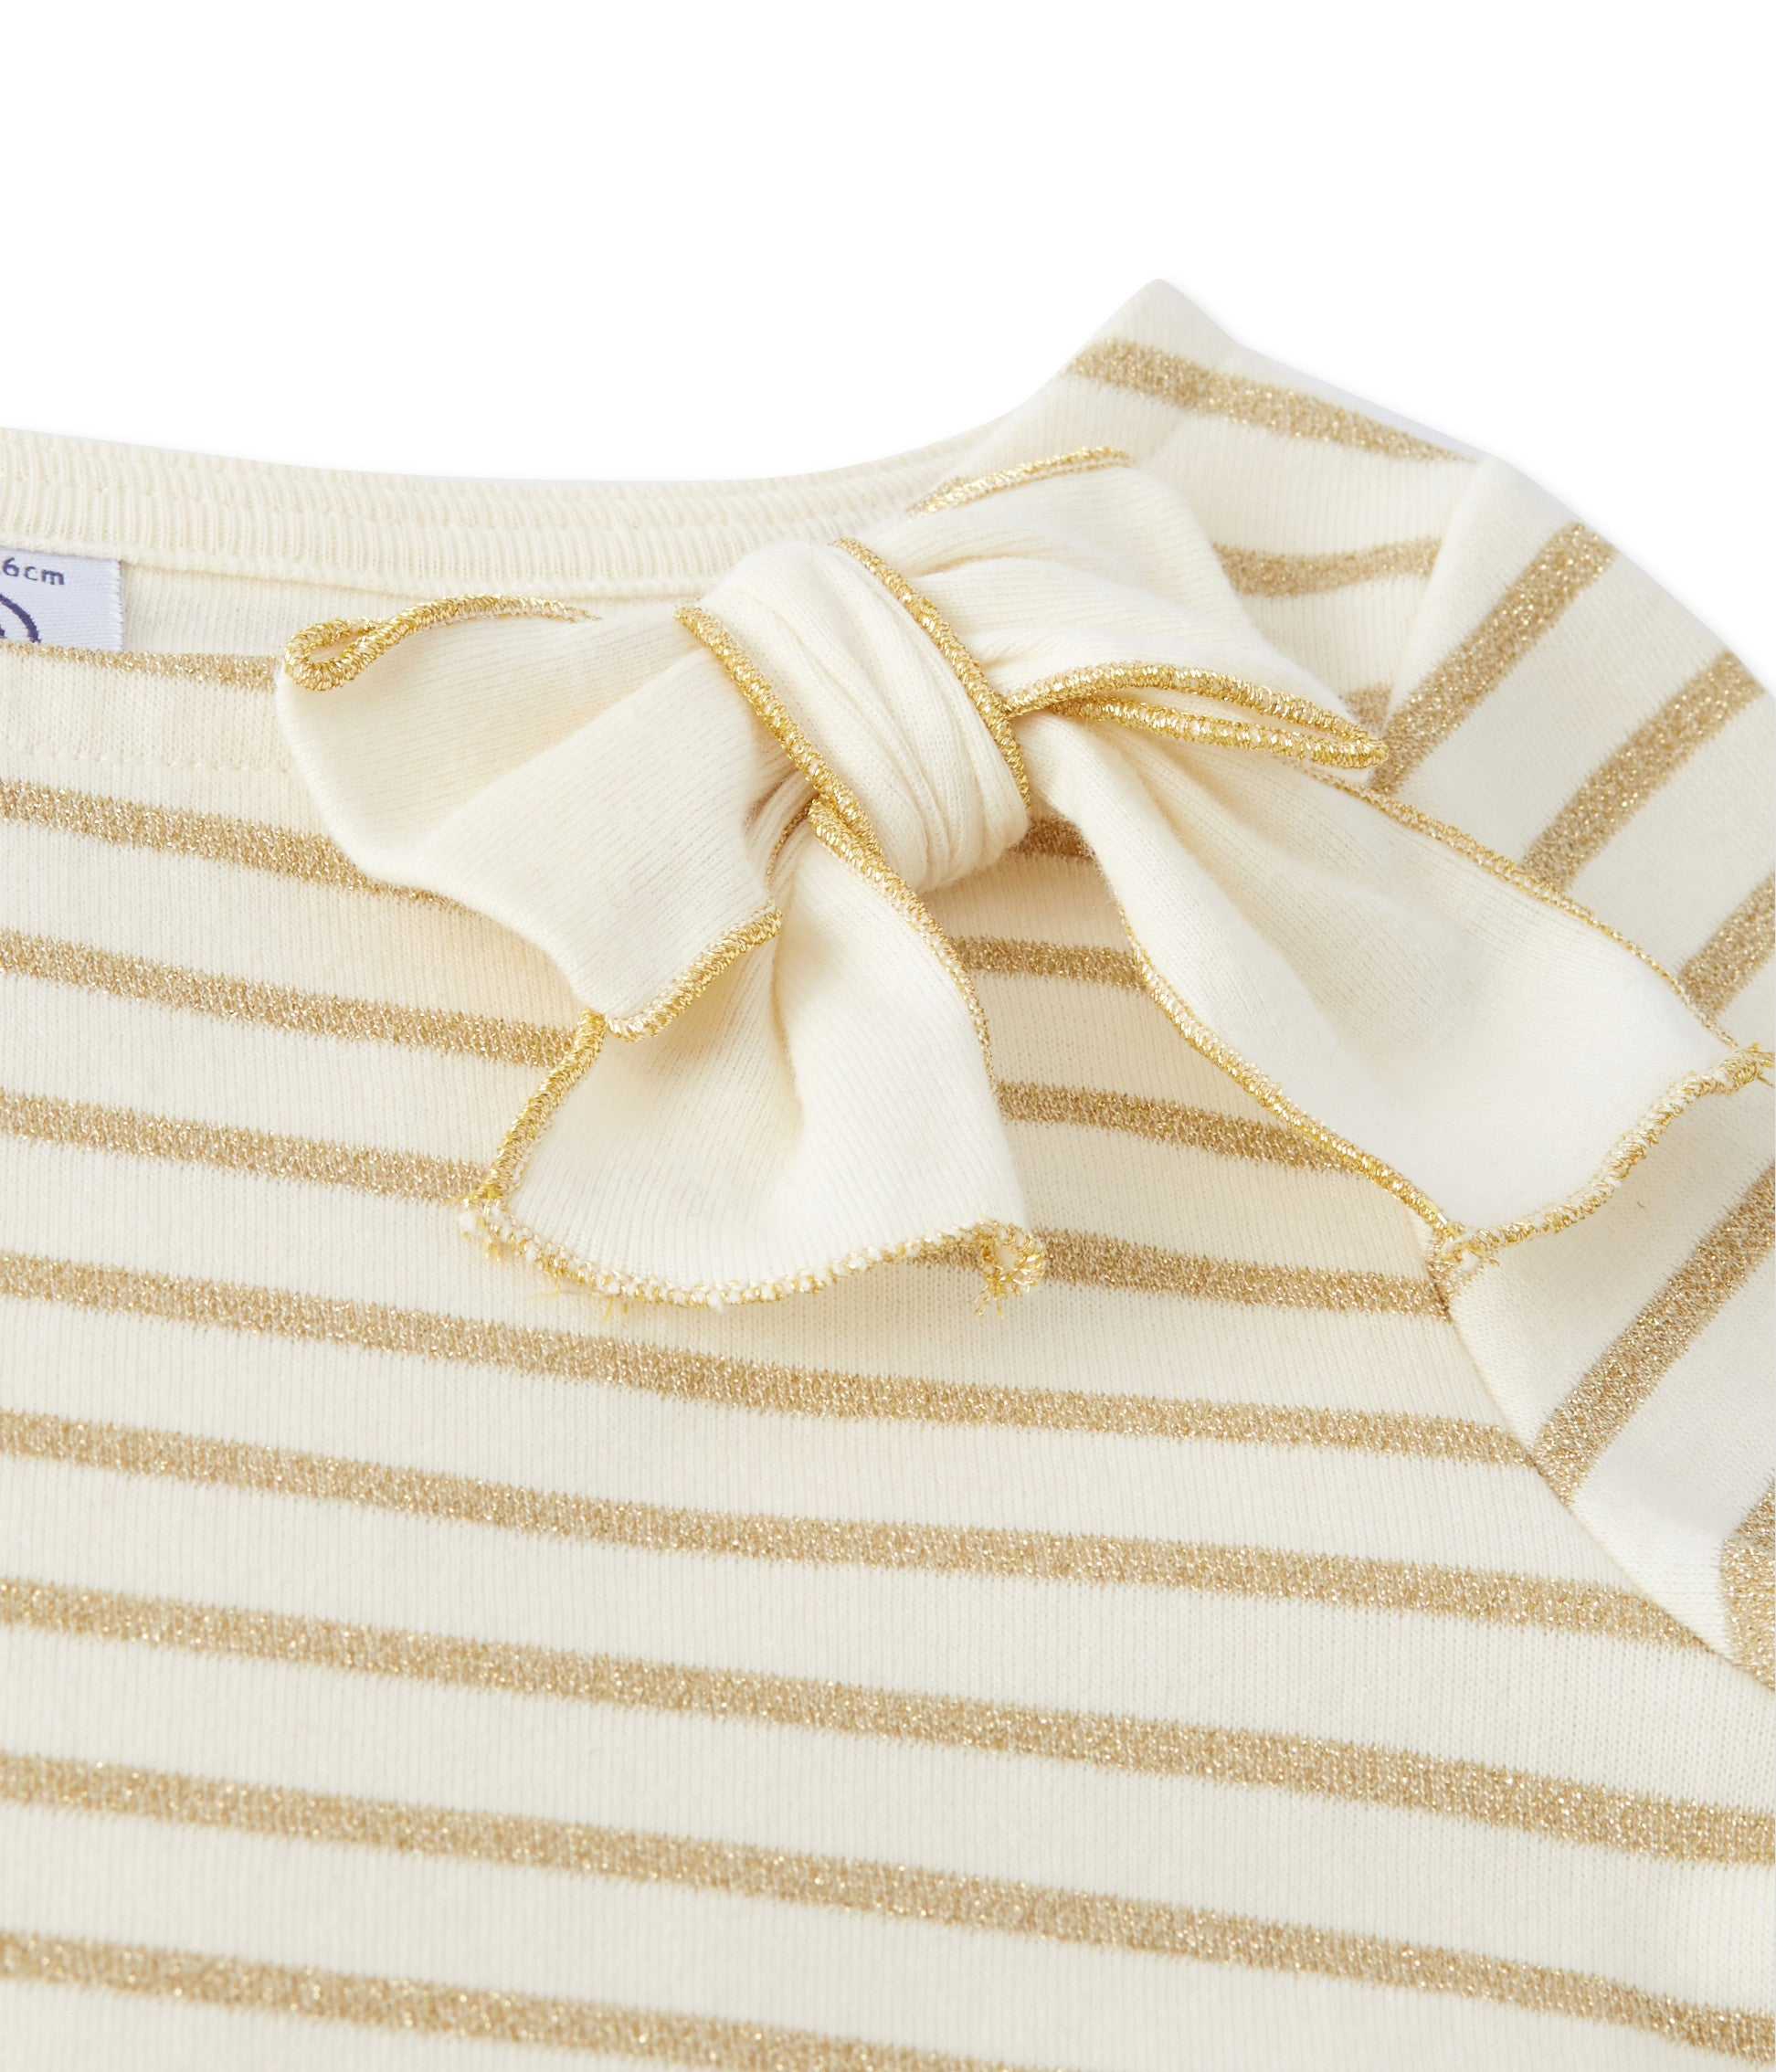 Petit Bateau - Bluse, Girls Shiny Sailor Top - Coquille Beige / Lurex Dore Yellow